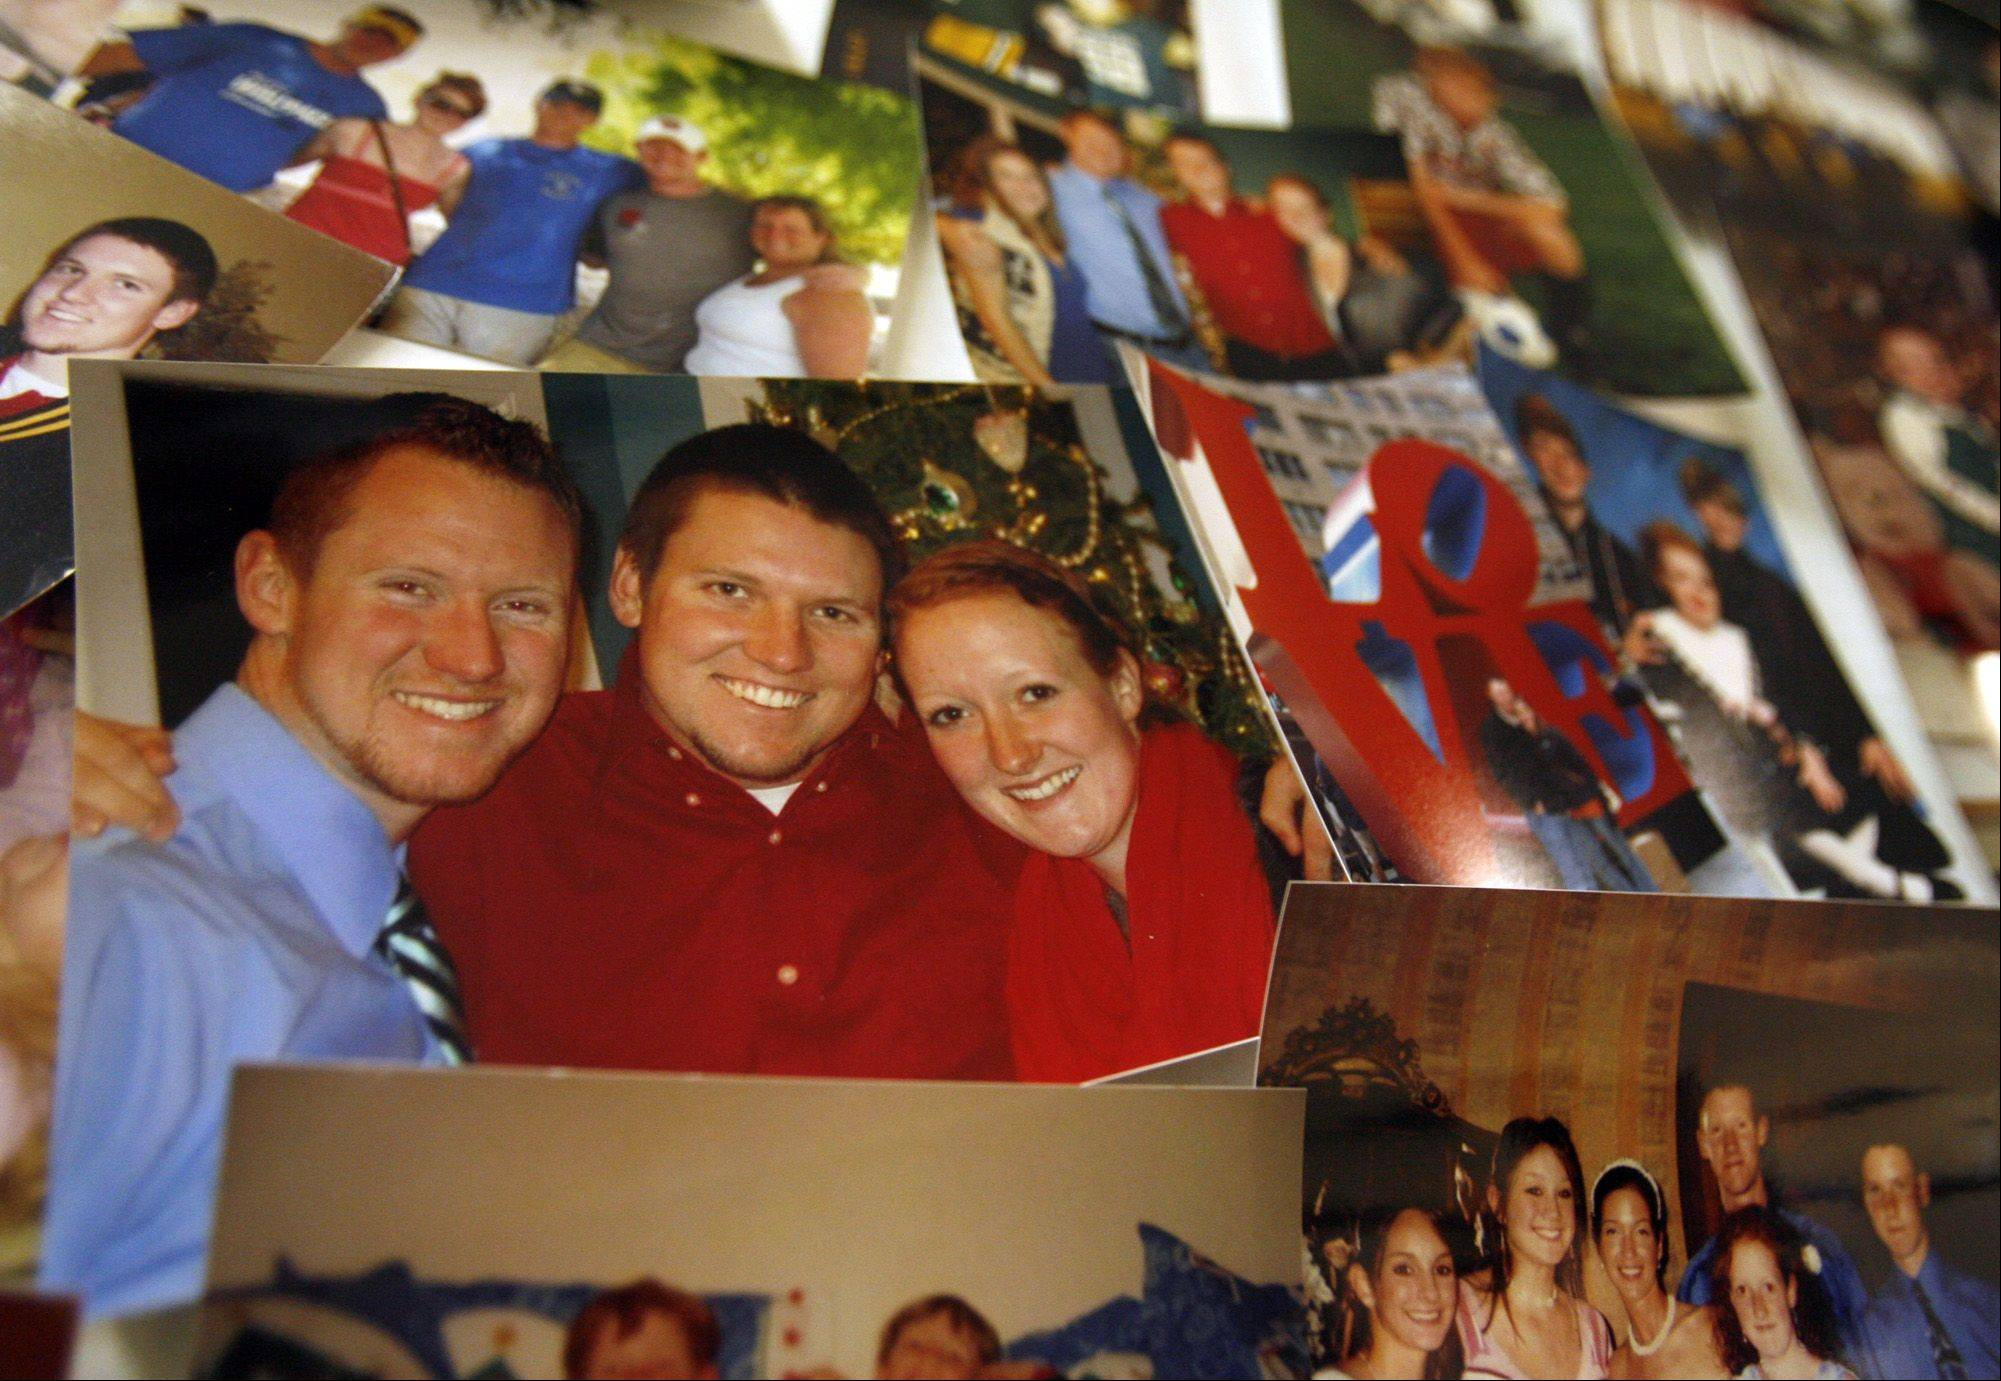 Photographs of Shaun Wild, including several with his brother Kevin and sister Shannon, were on display before the memorial service for the slain Naperville teacher at Brown Deer High School in Wisconsin on Thursday.